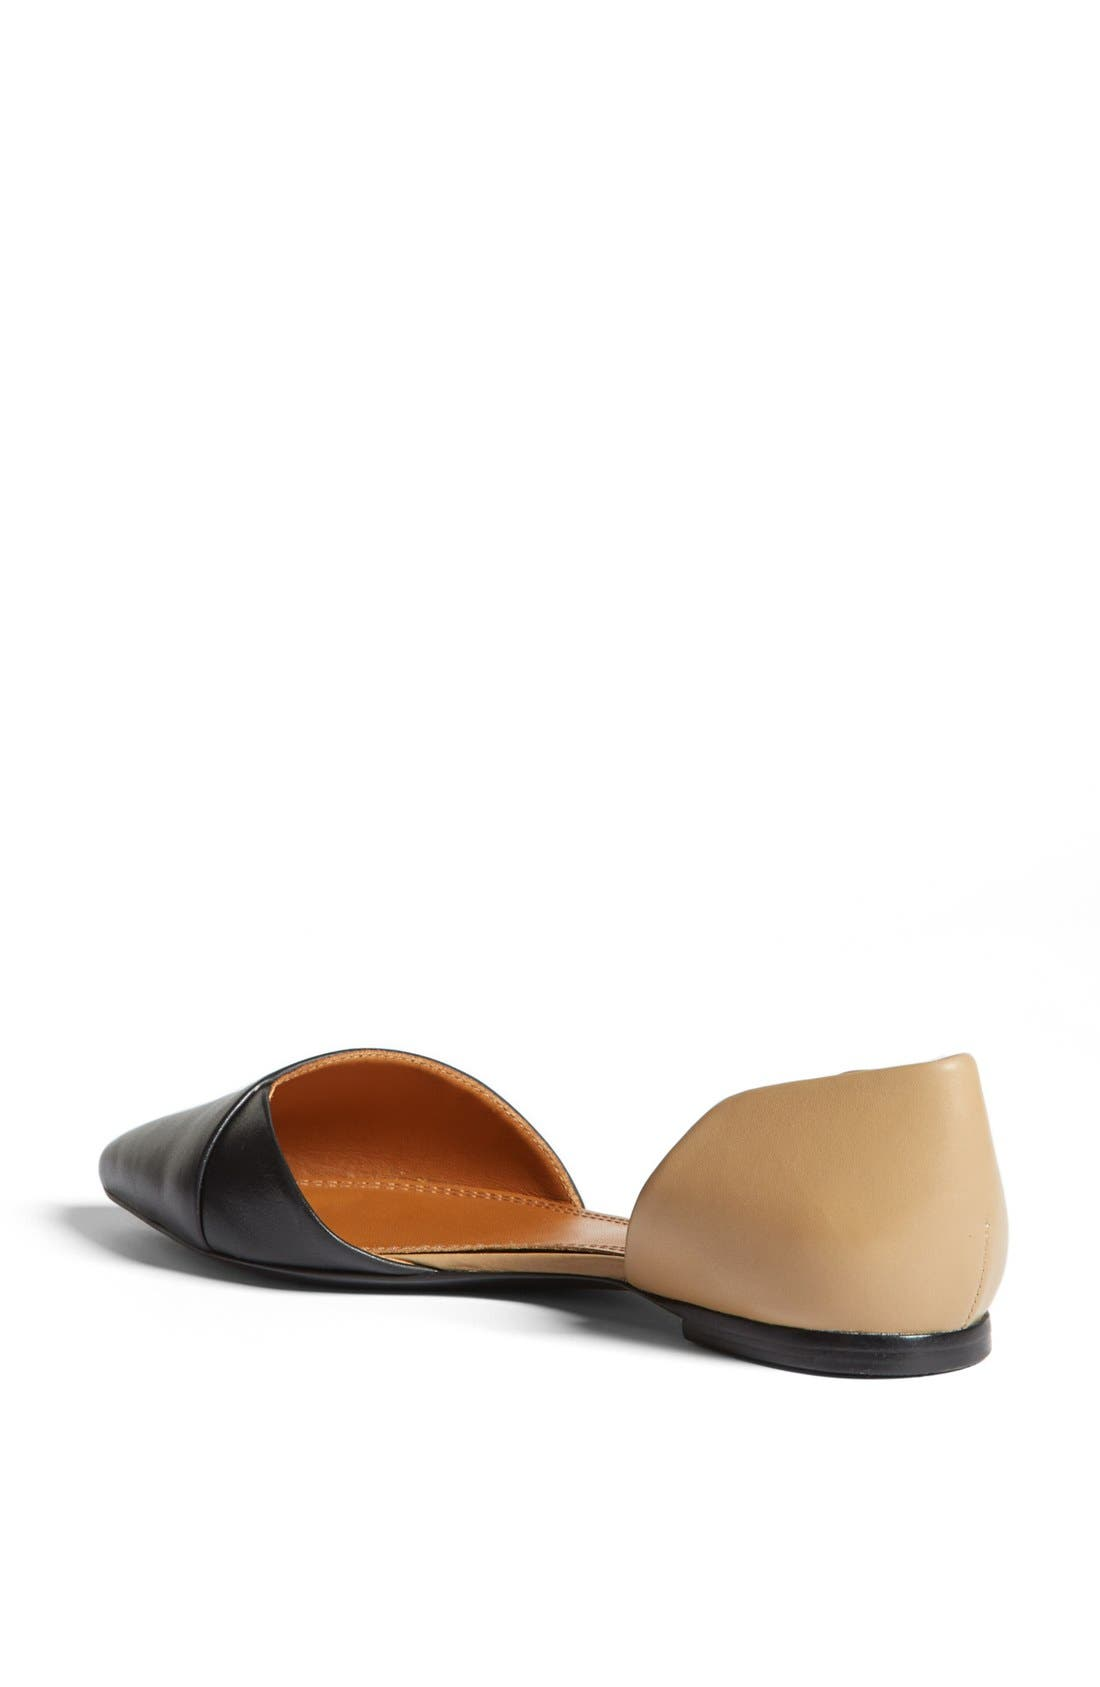 TORY BURCH,                             Leather Flat,                             Alternate thumbnail 2, color,                             008